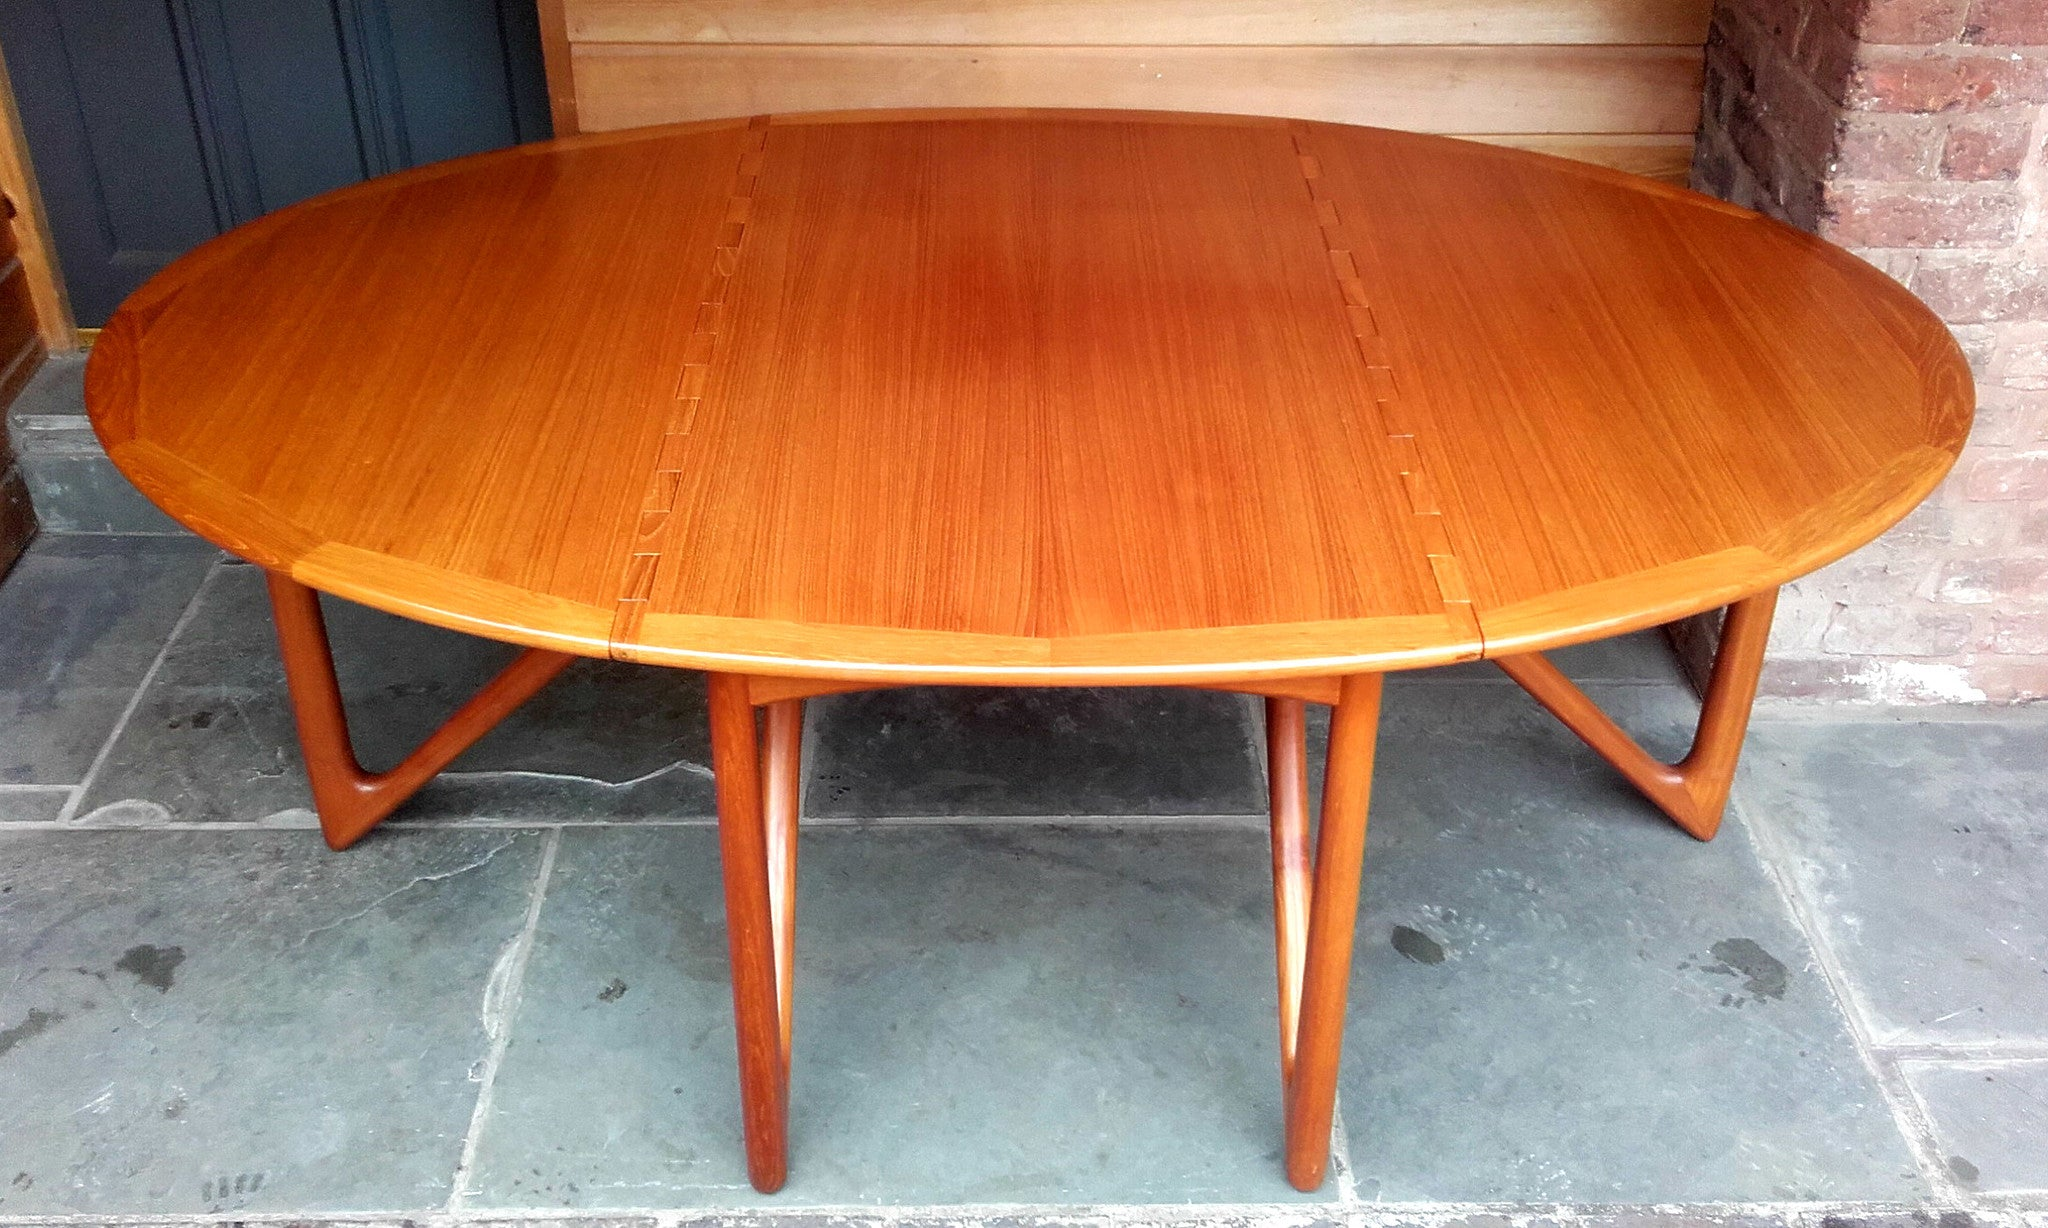 Beautiful Niels Koefoed Drop Leaf Dining Table Model 304 With